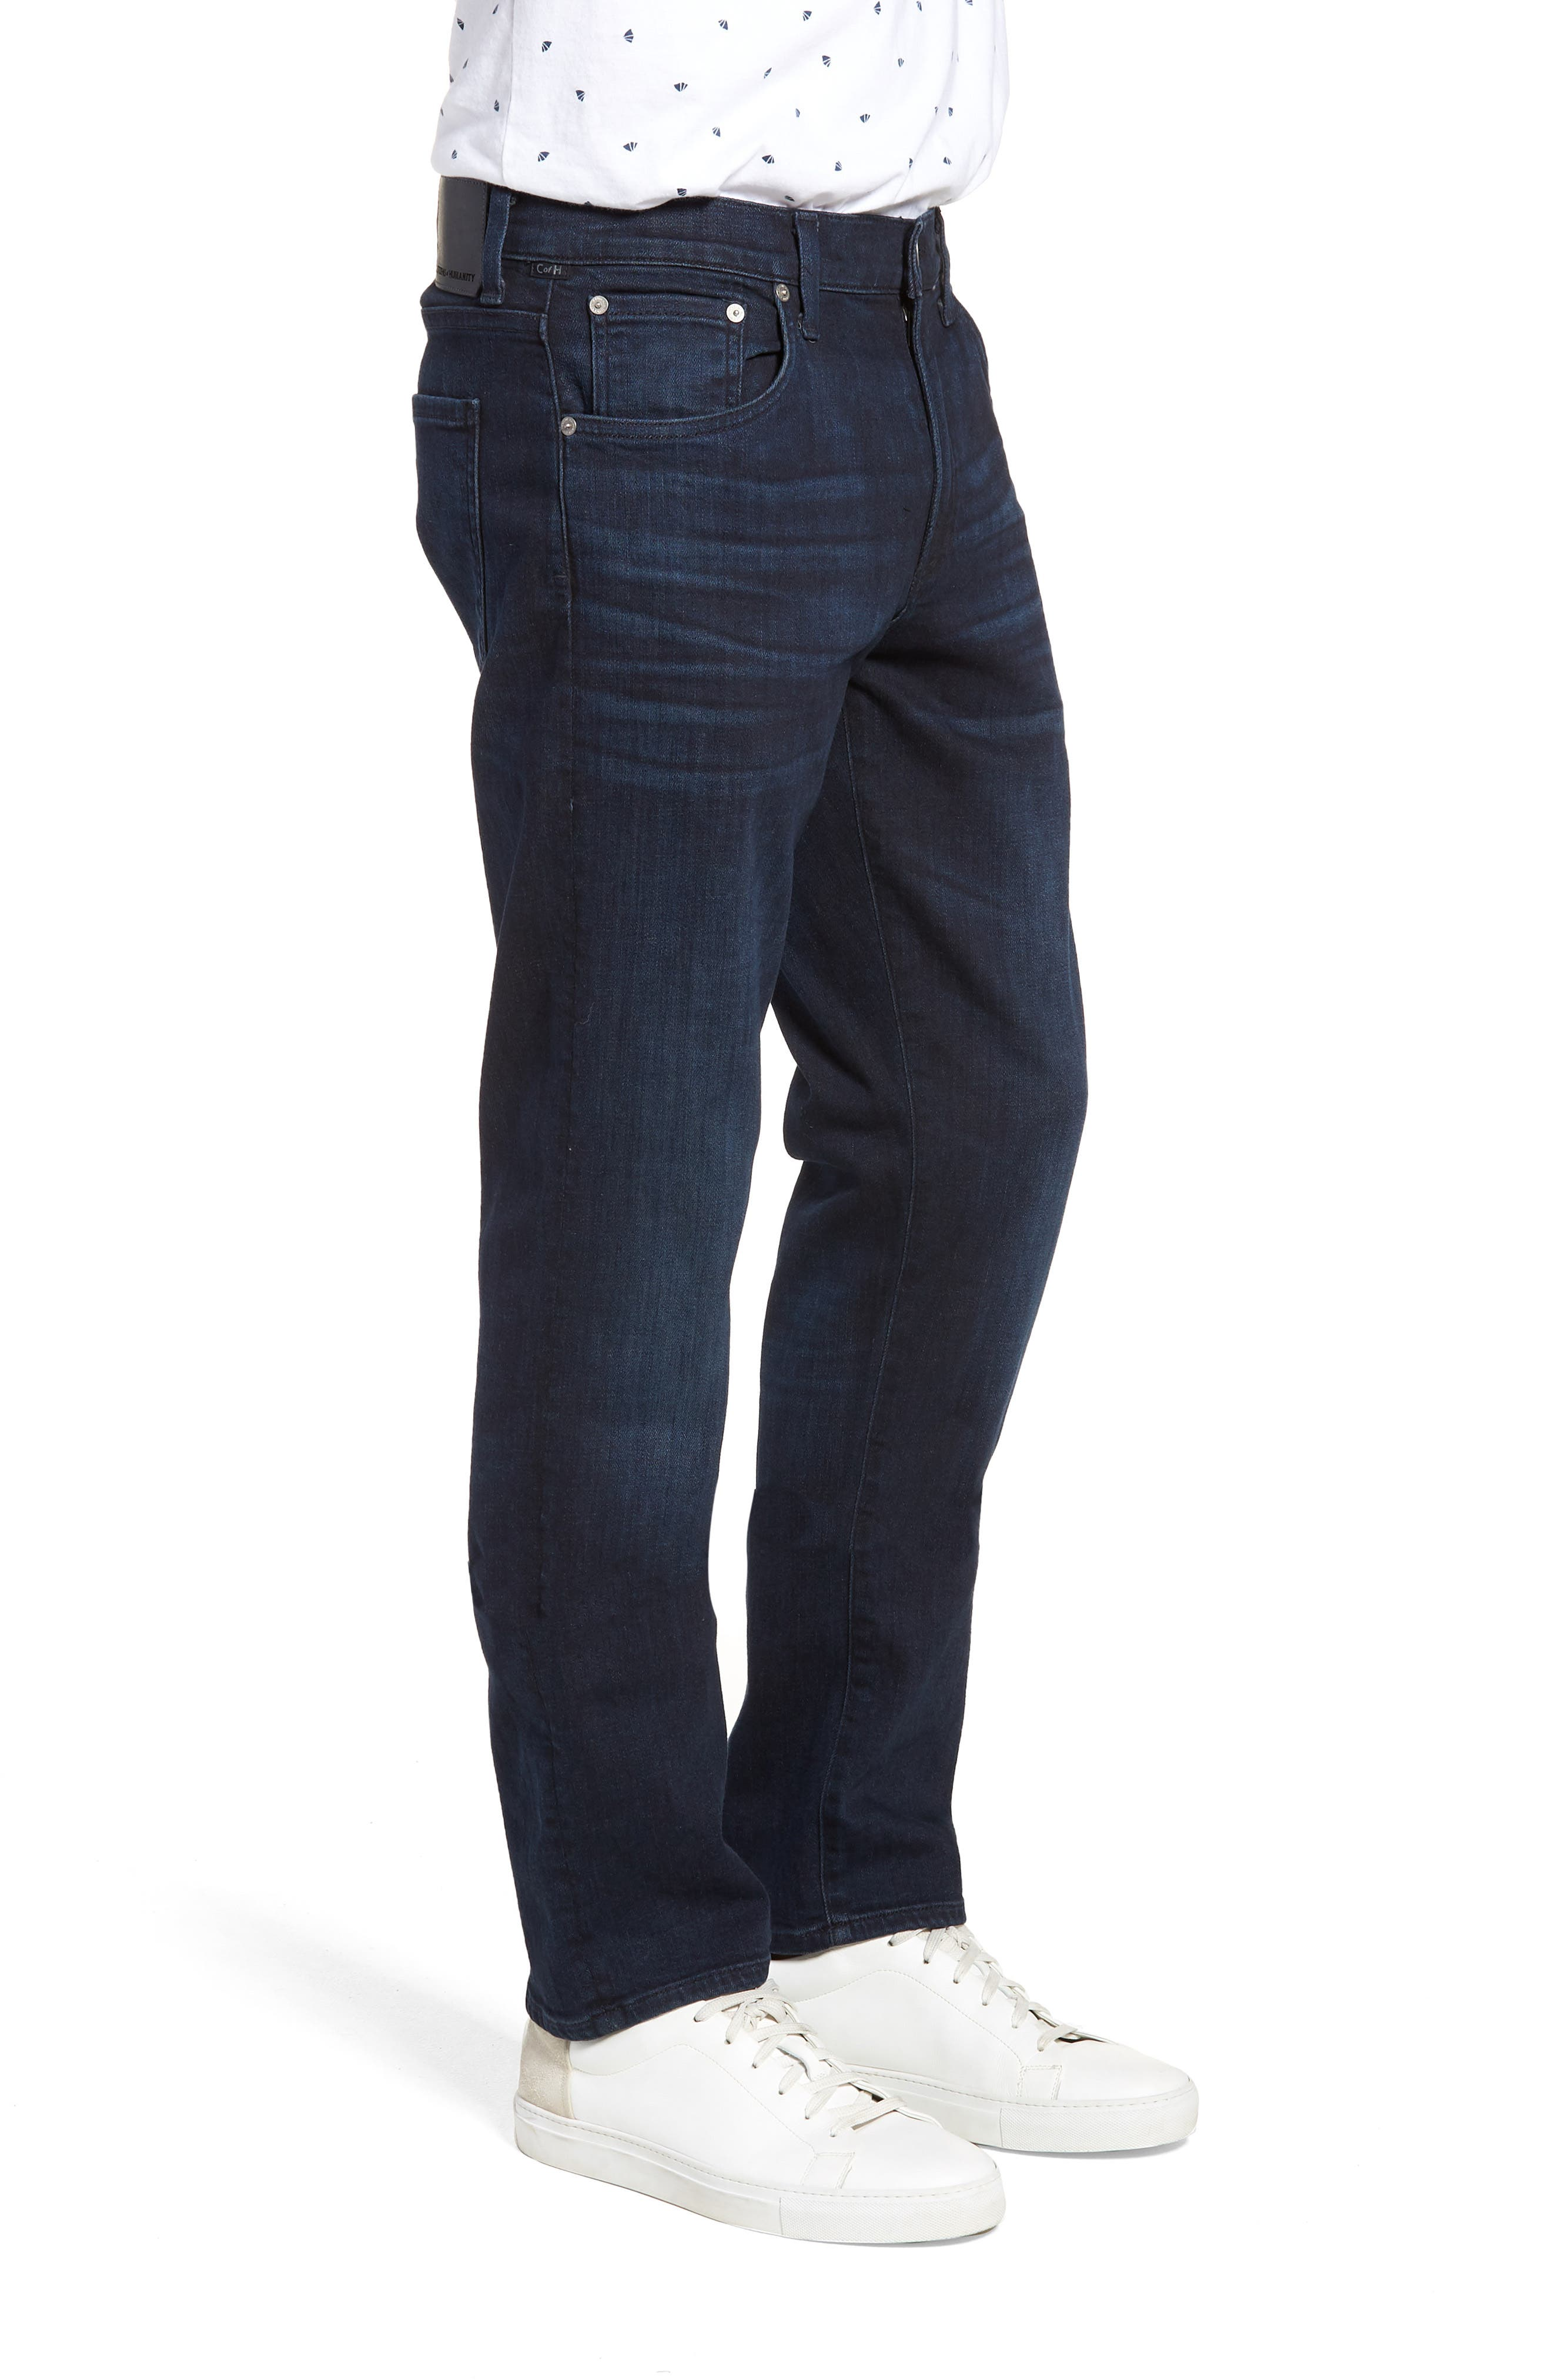 Gage Slim Straight Leg Jeans,                             Alternate thumbnail 3, color,                             Geary